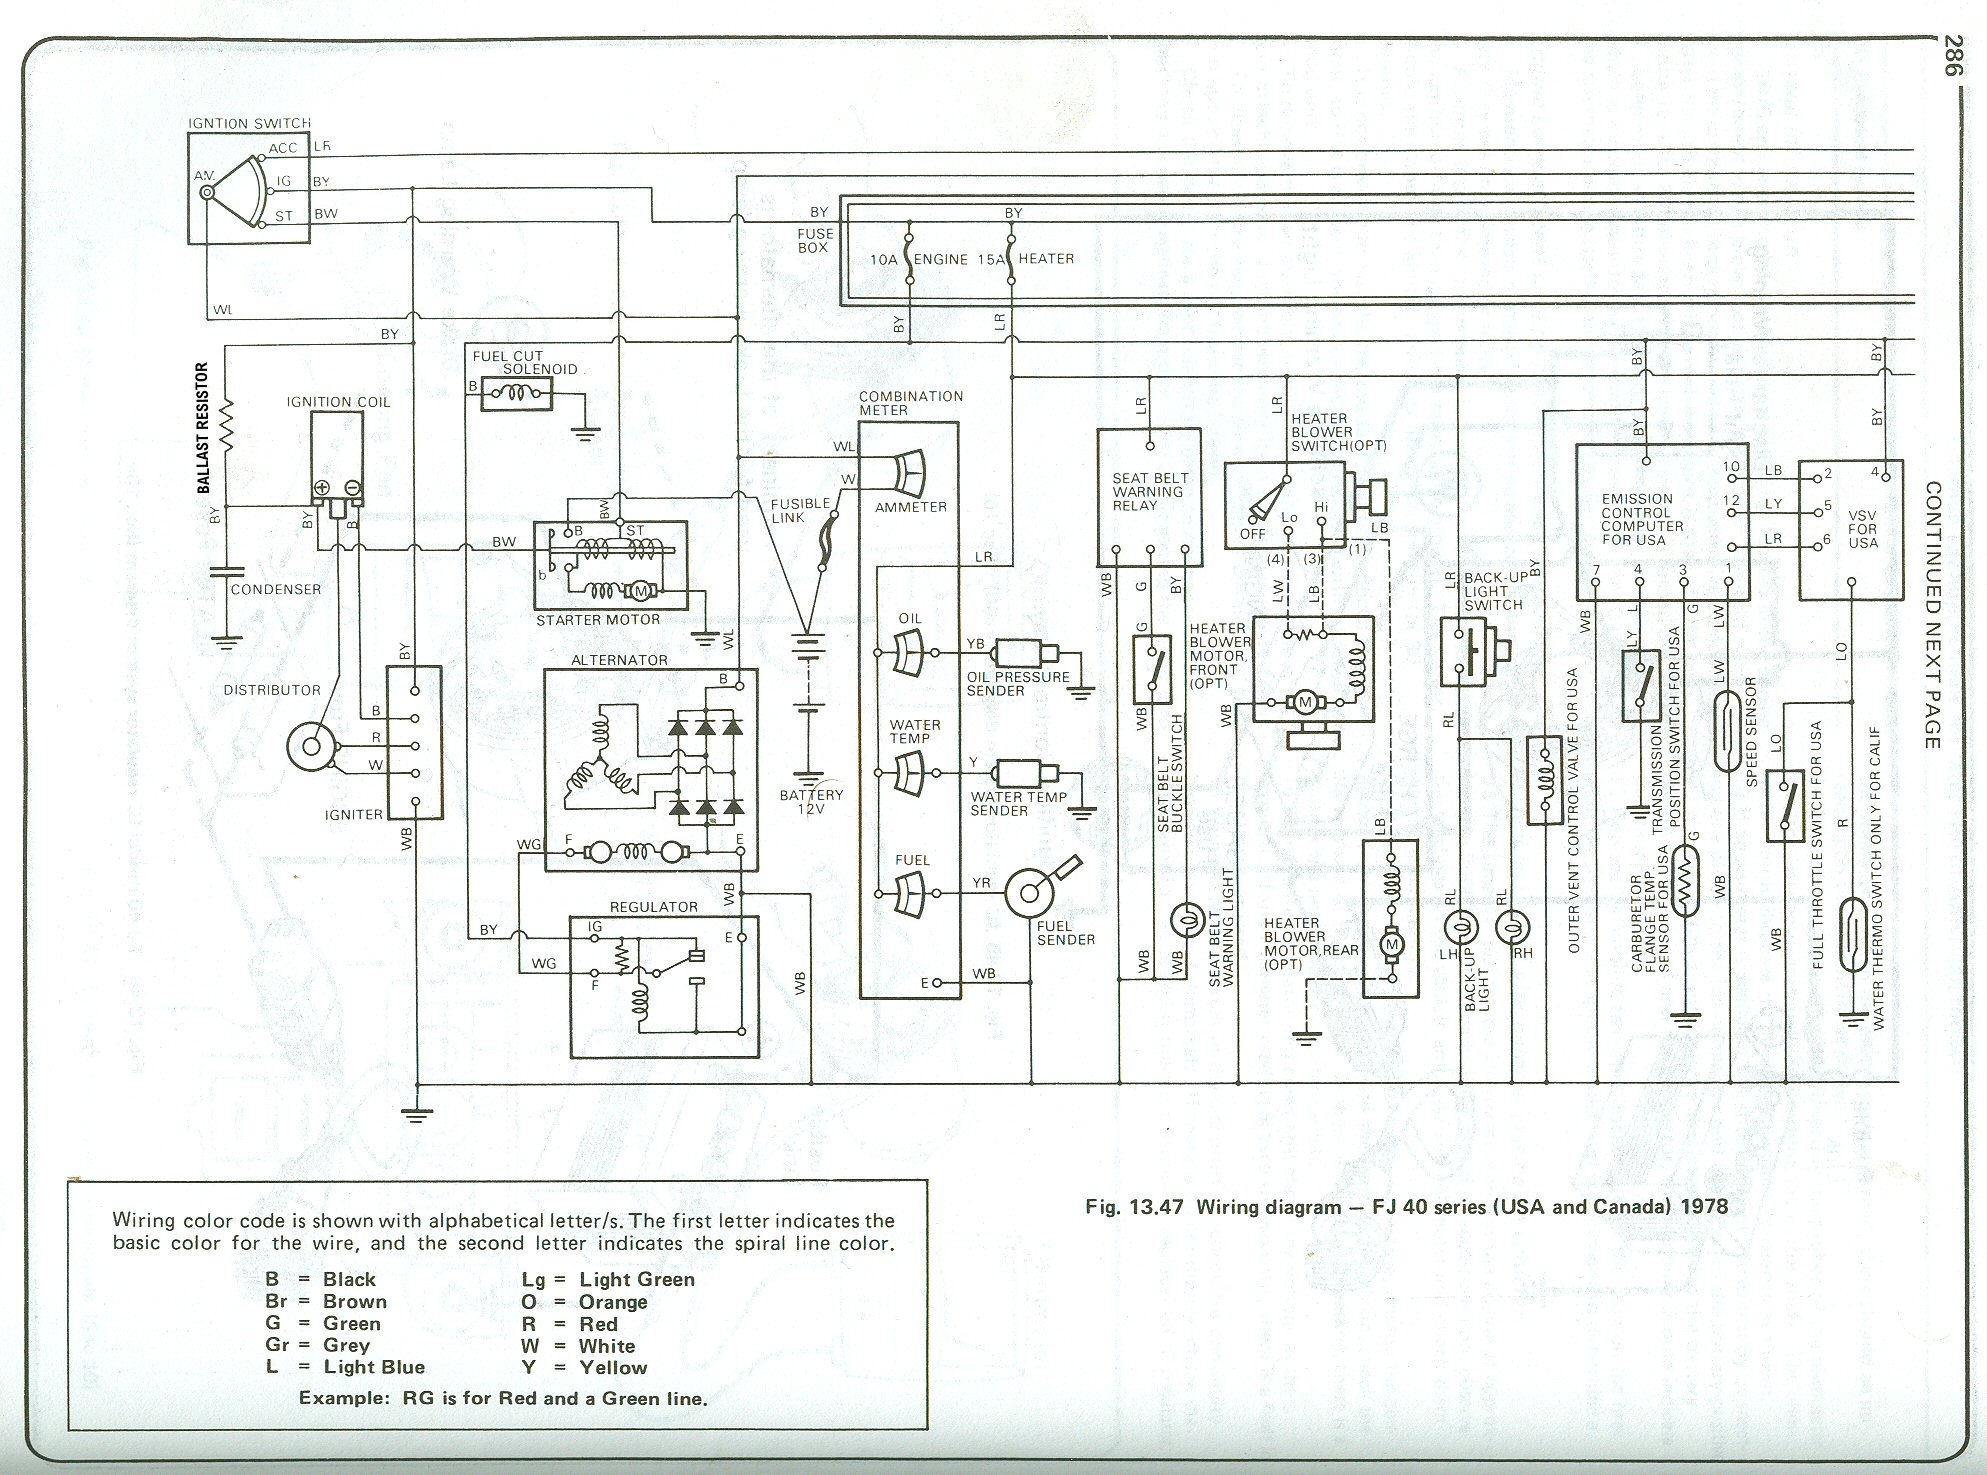 1978 fj40 wiring diagram 1998 bmw z3 radio 3978 issue easy solution ih8mud forum